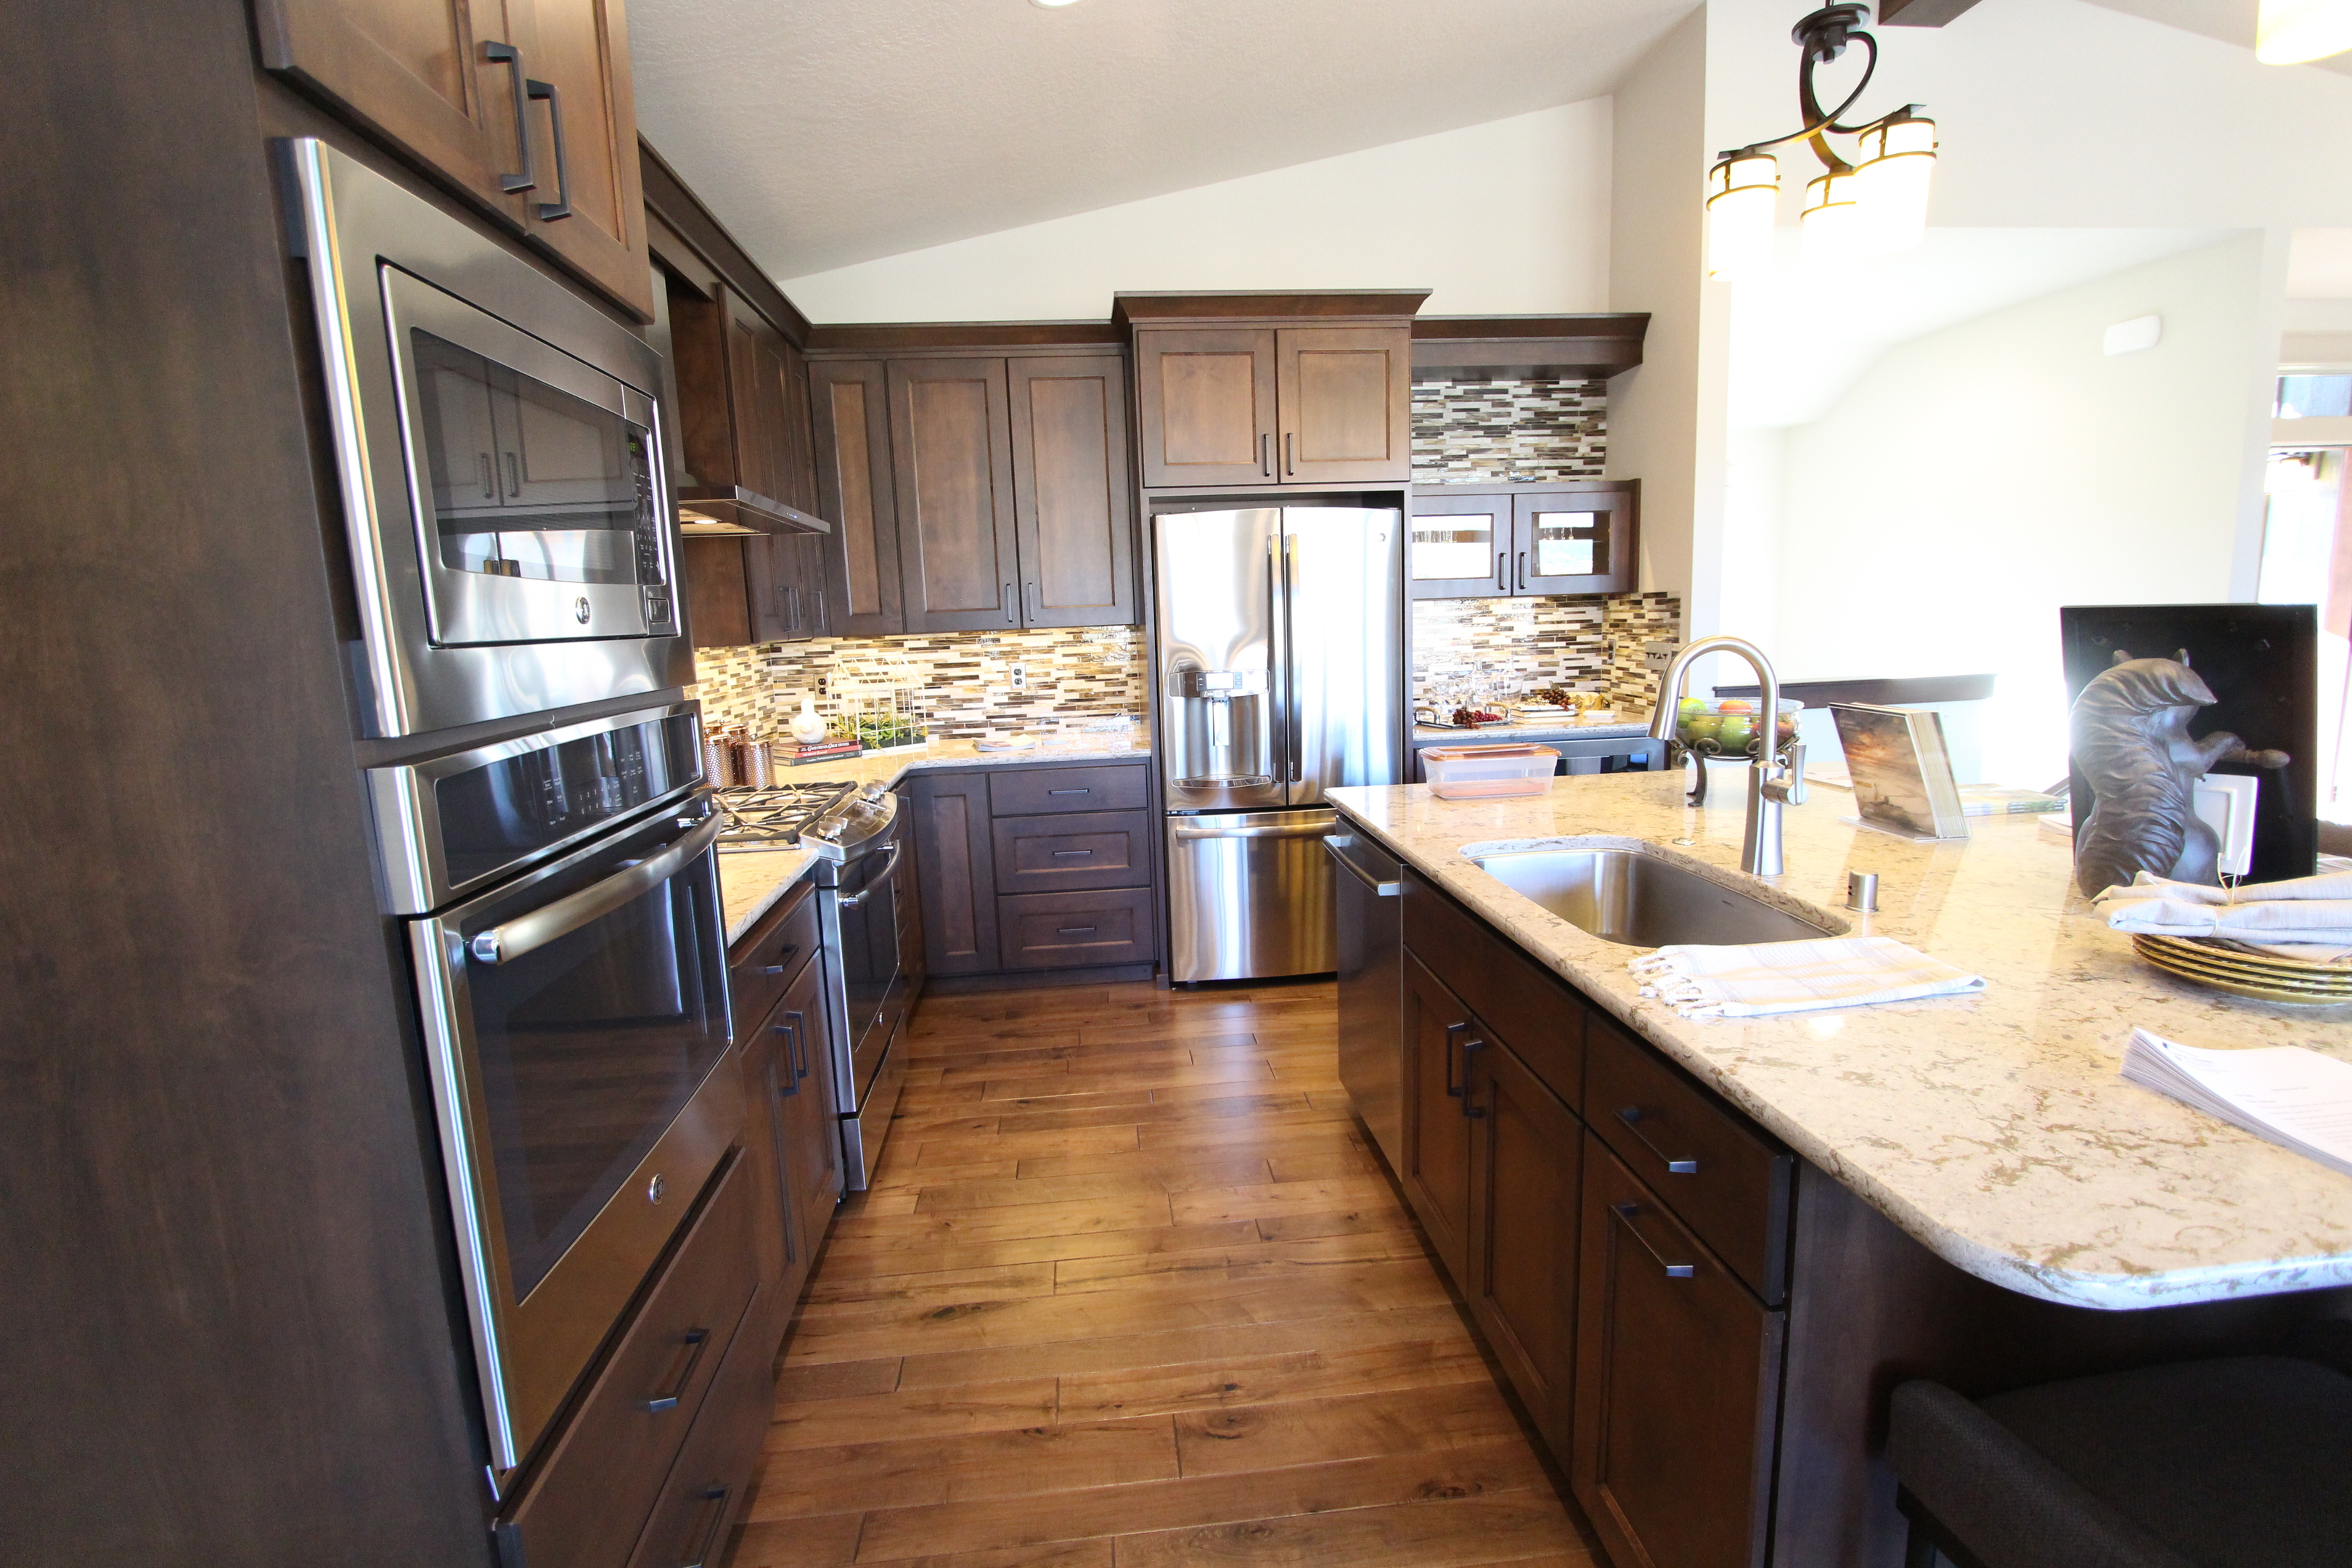 Affordable custom cabinets showroom thumb kitchen contemporary style clear alder dark color recessed panel glass doors double oven cabinet 7 planetlyrics Choice Image